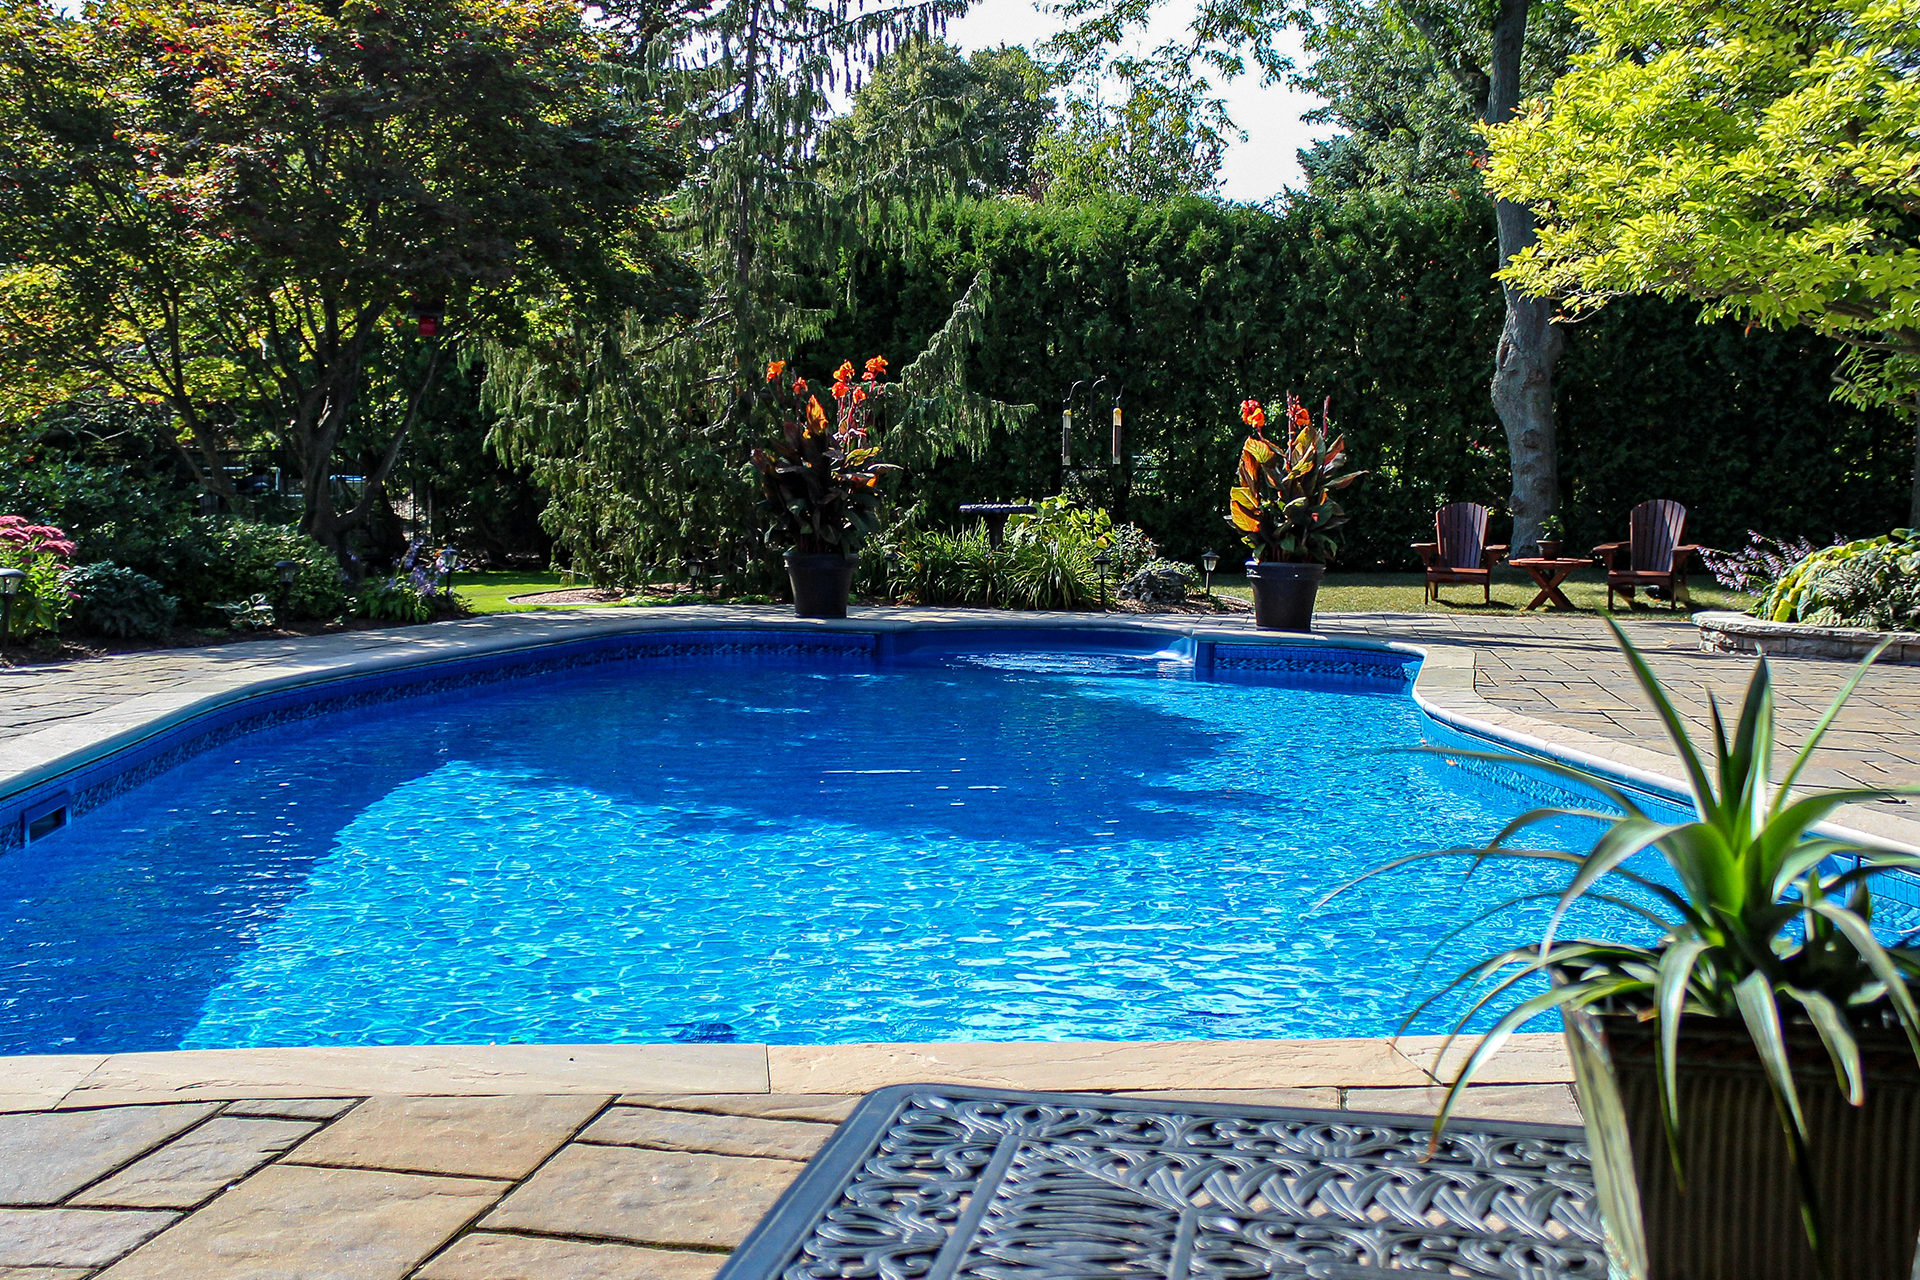 Image of a backyard pool that is blue.